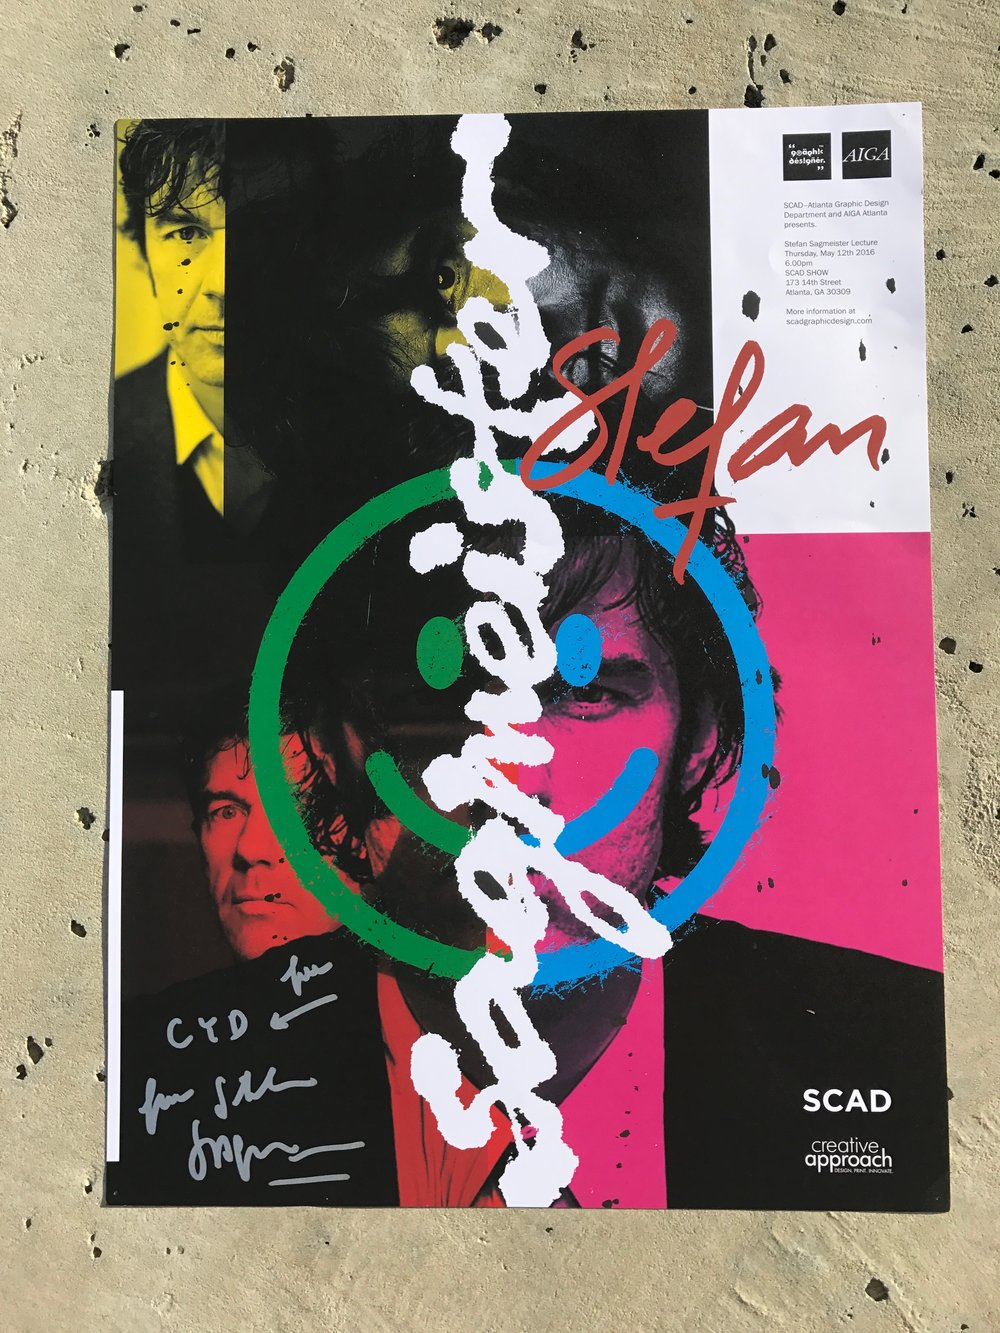 Signed Sagmeister poster I accidentally got at his ATL Beauty and Design Lecture. I apologize to whoever's day I ruined. Click to see my sketchbook pages inspired by #themanthemyththelegend